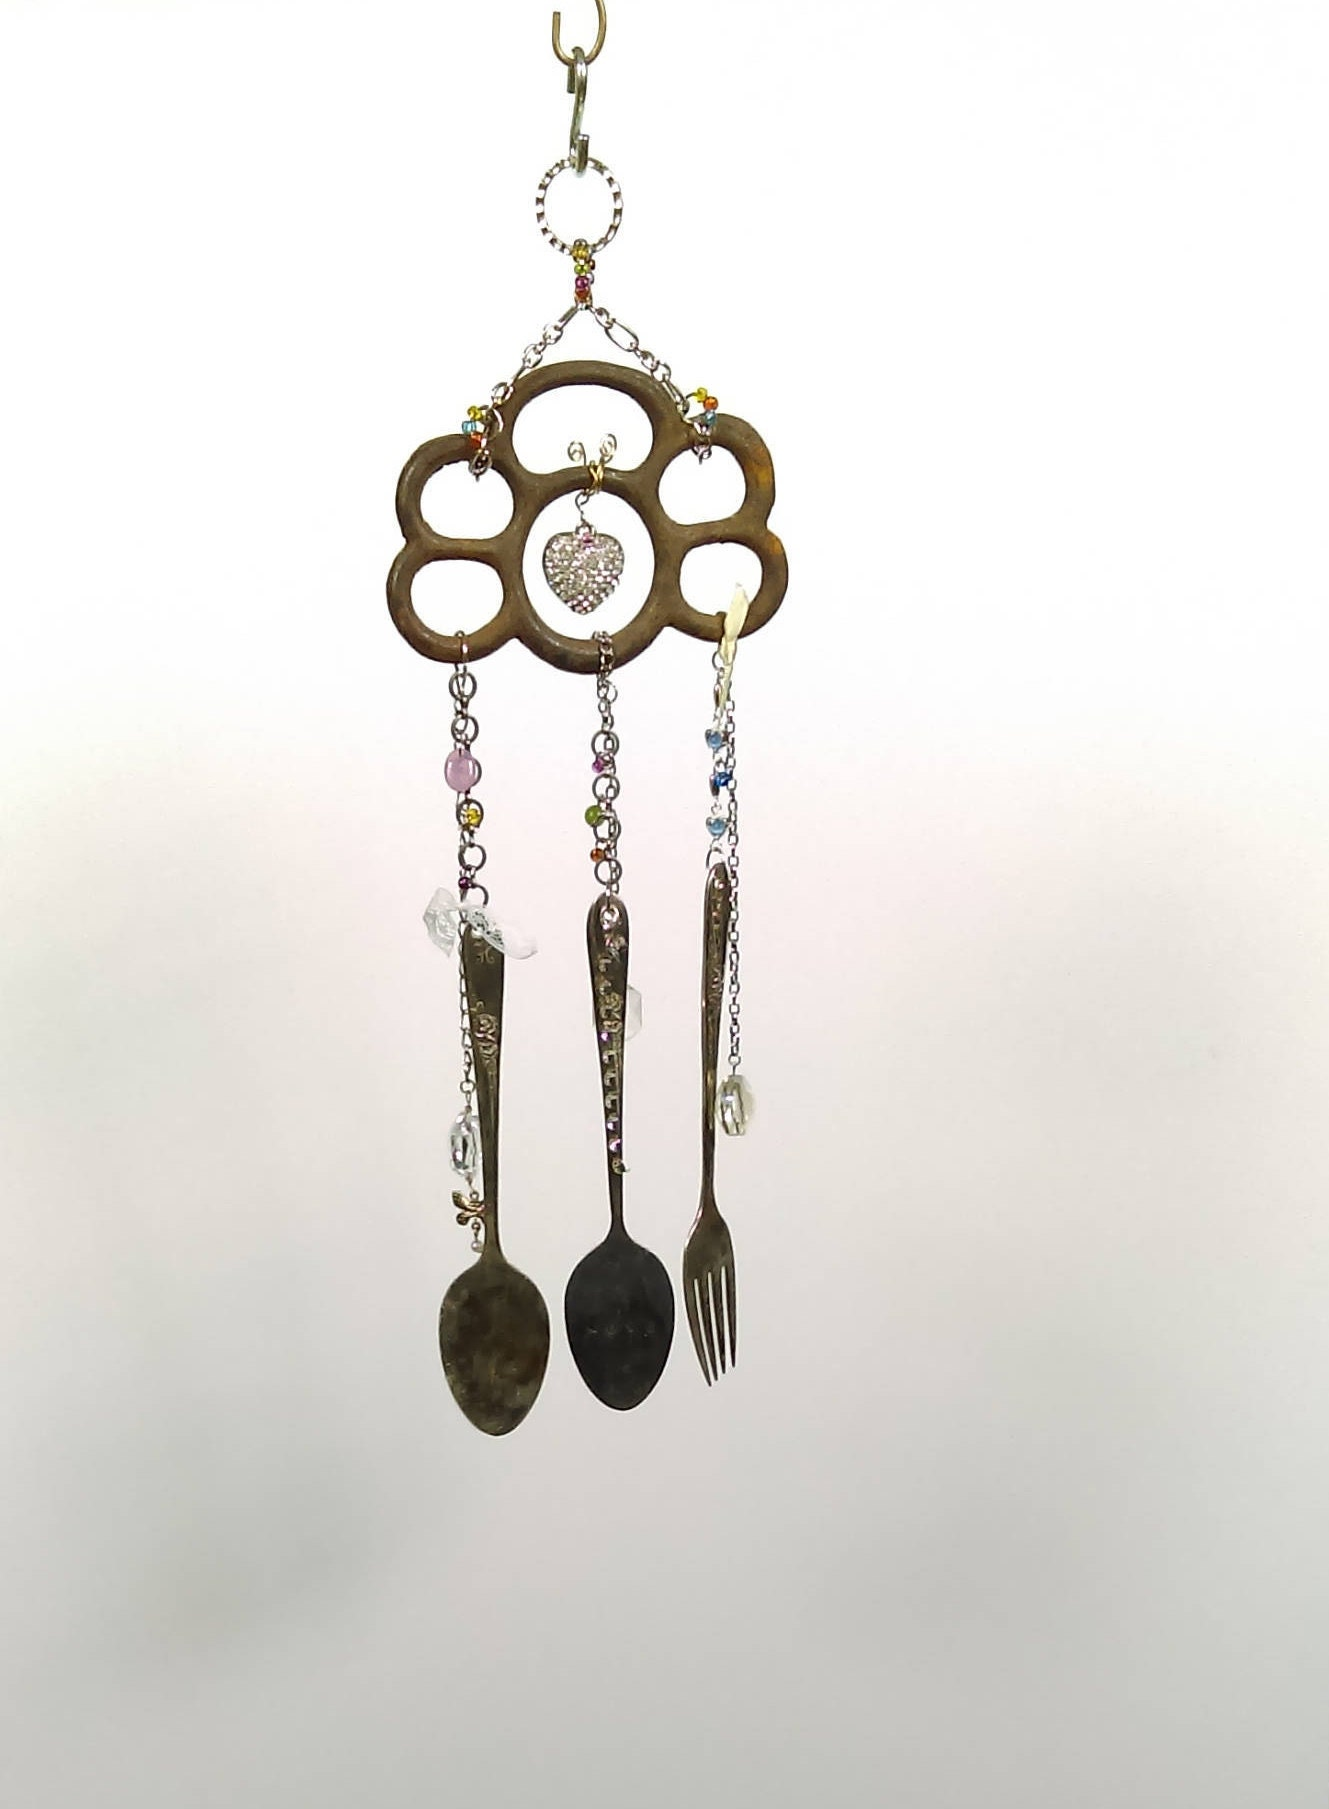 wind chime unique wind chimes metal wind chimes recycled. Black Bedroom Furniture Sets. Home Design Ideas